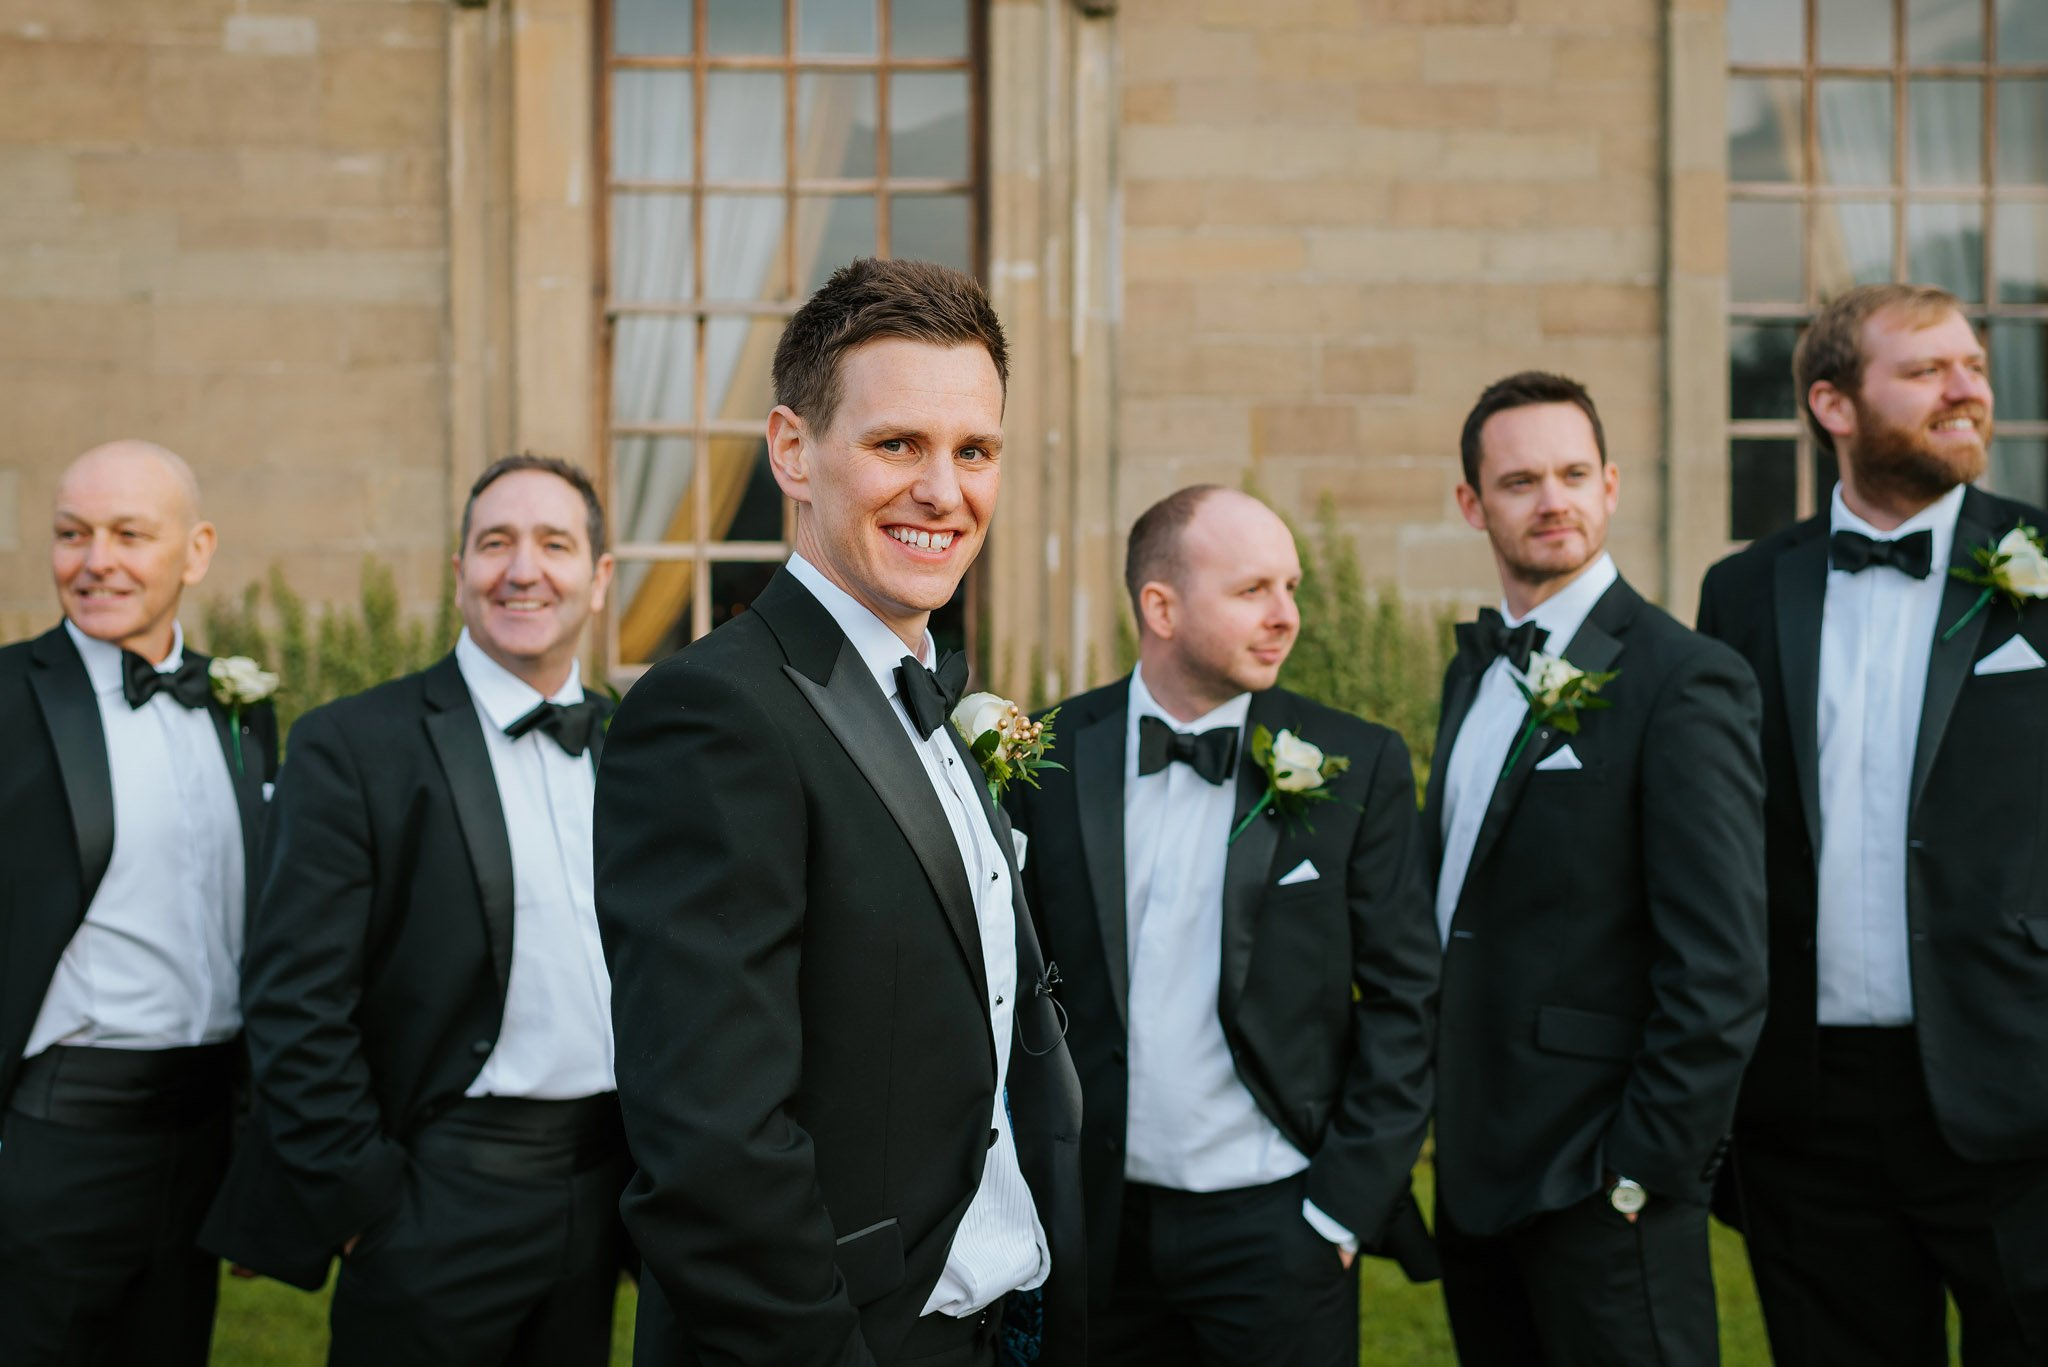 coombe abbey wedding coventry 49 - Coombe Abbey wedding in Coventry, Warwickshire - Sam + Matt